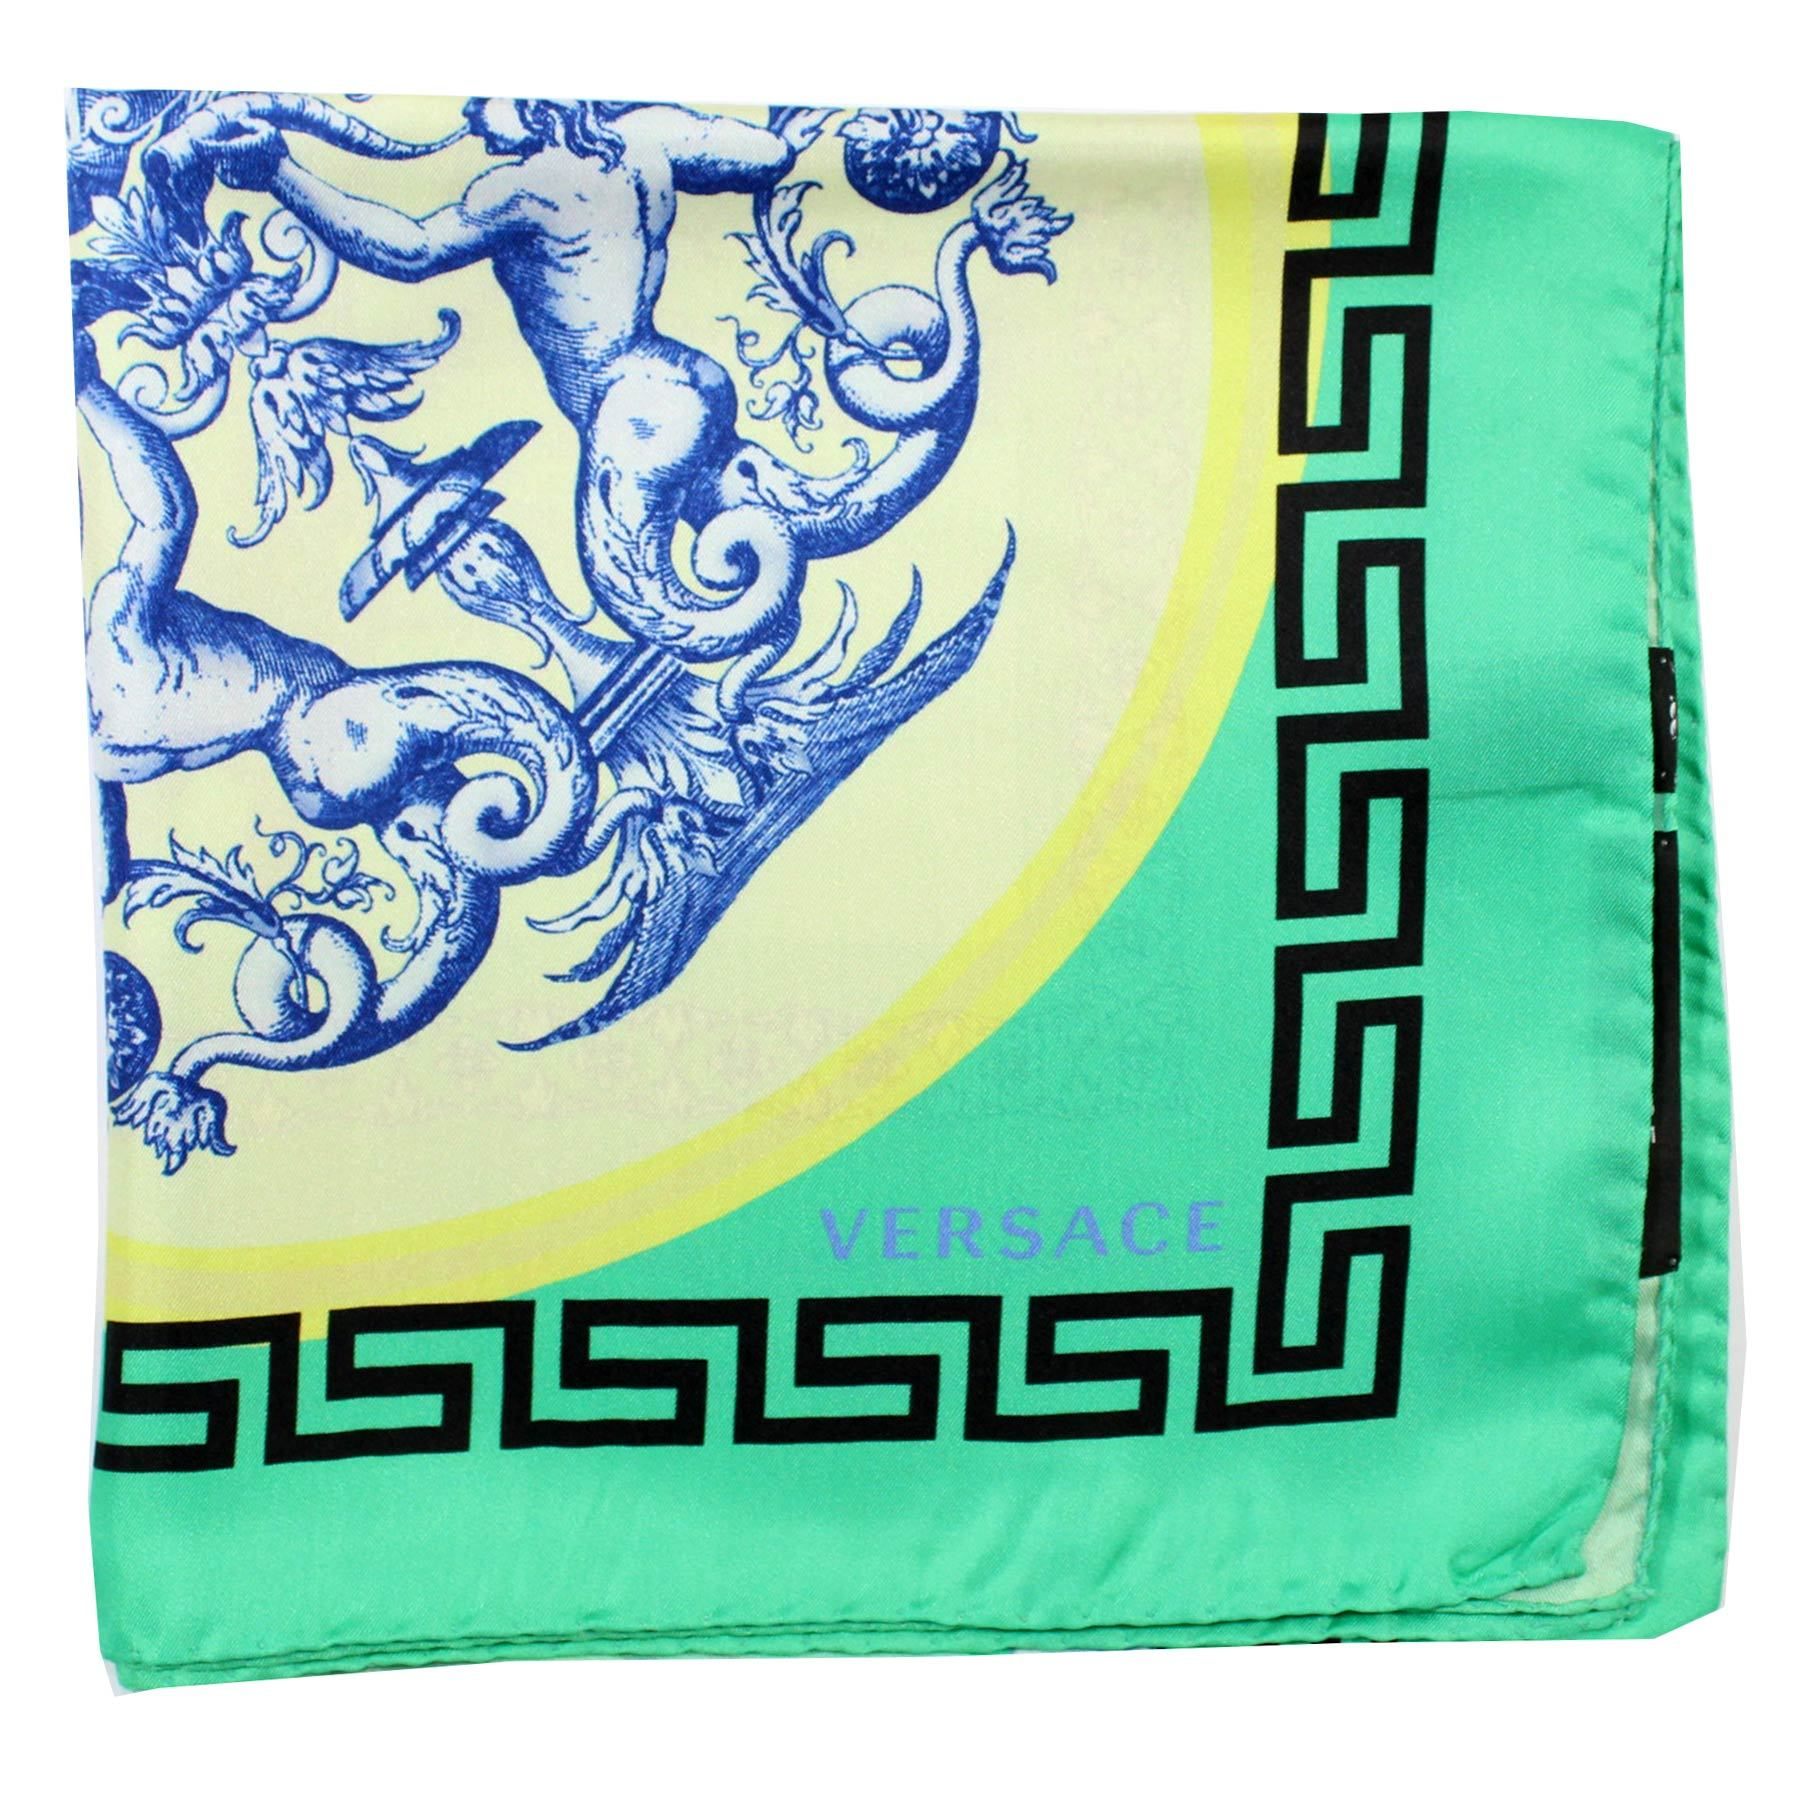 Versace Green Greek Knit & Fish Twill Silk Square Scarf